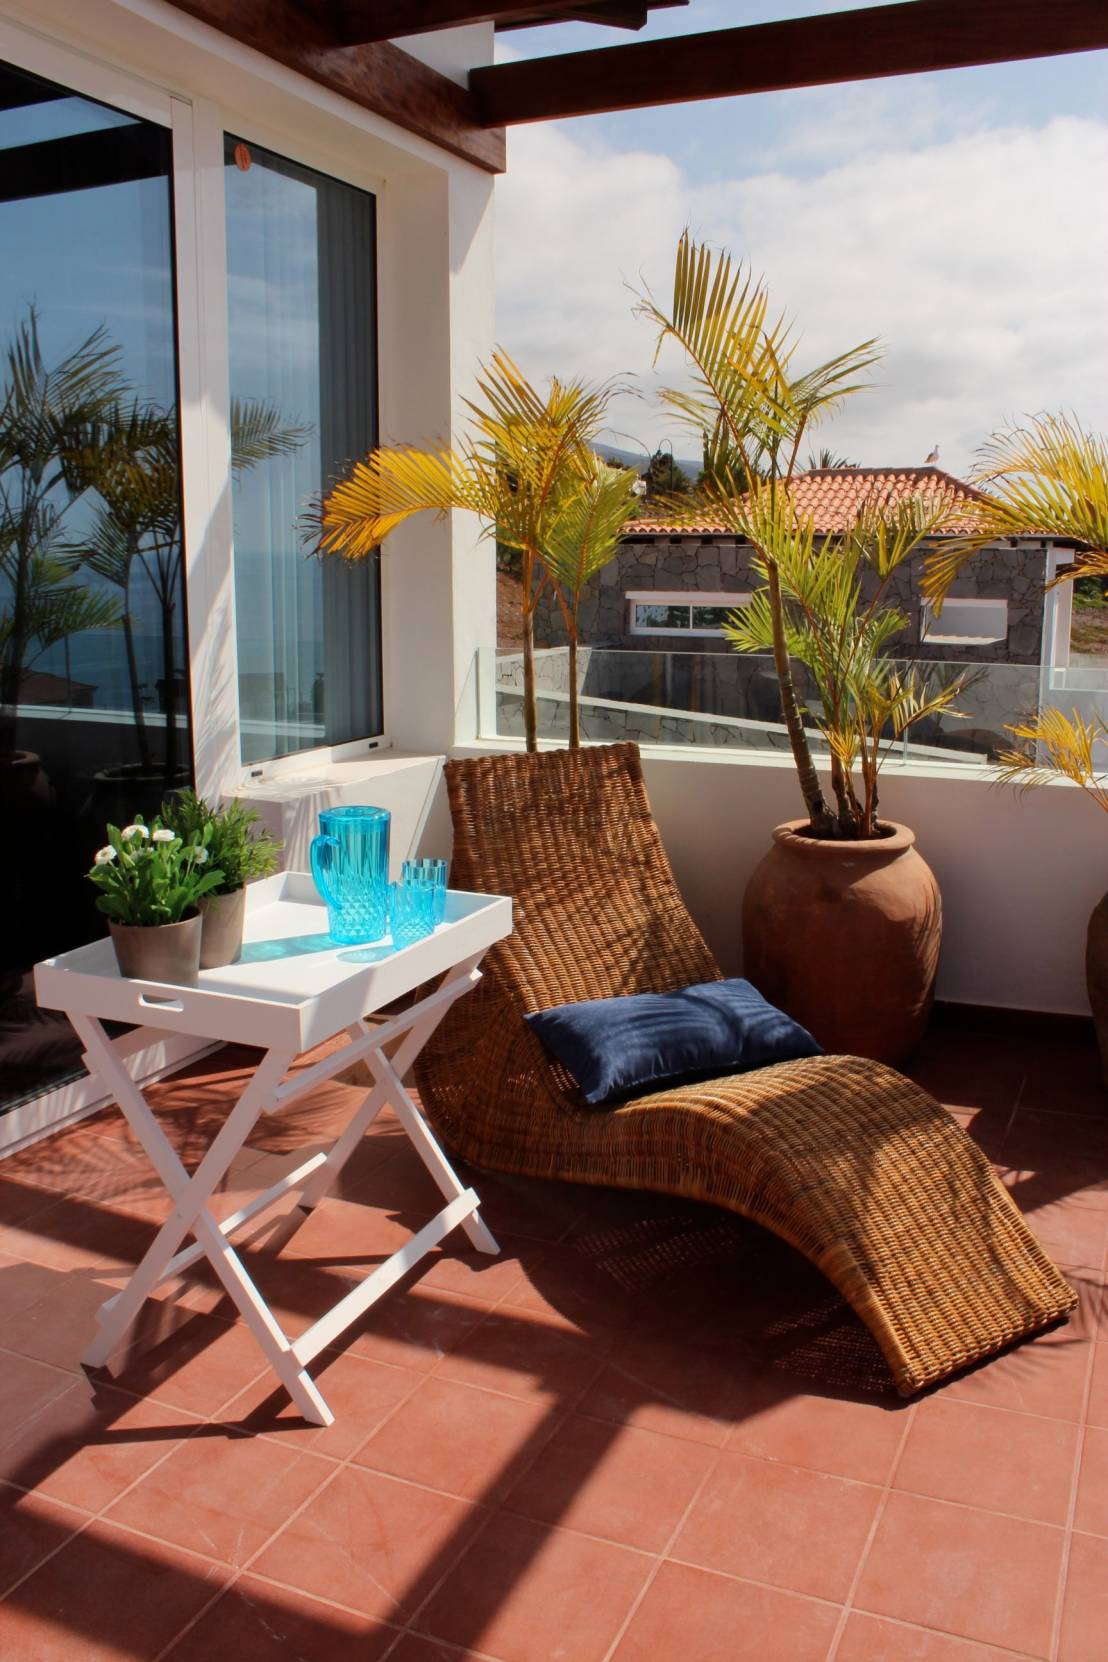 7 grandes ideas para balcones y terrazas peque as for Ideas terrazas economicas